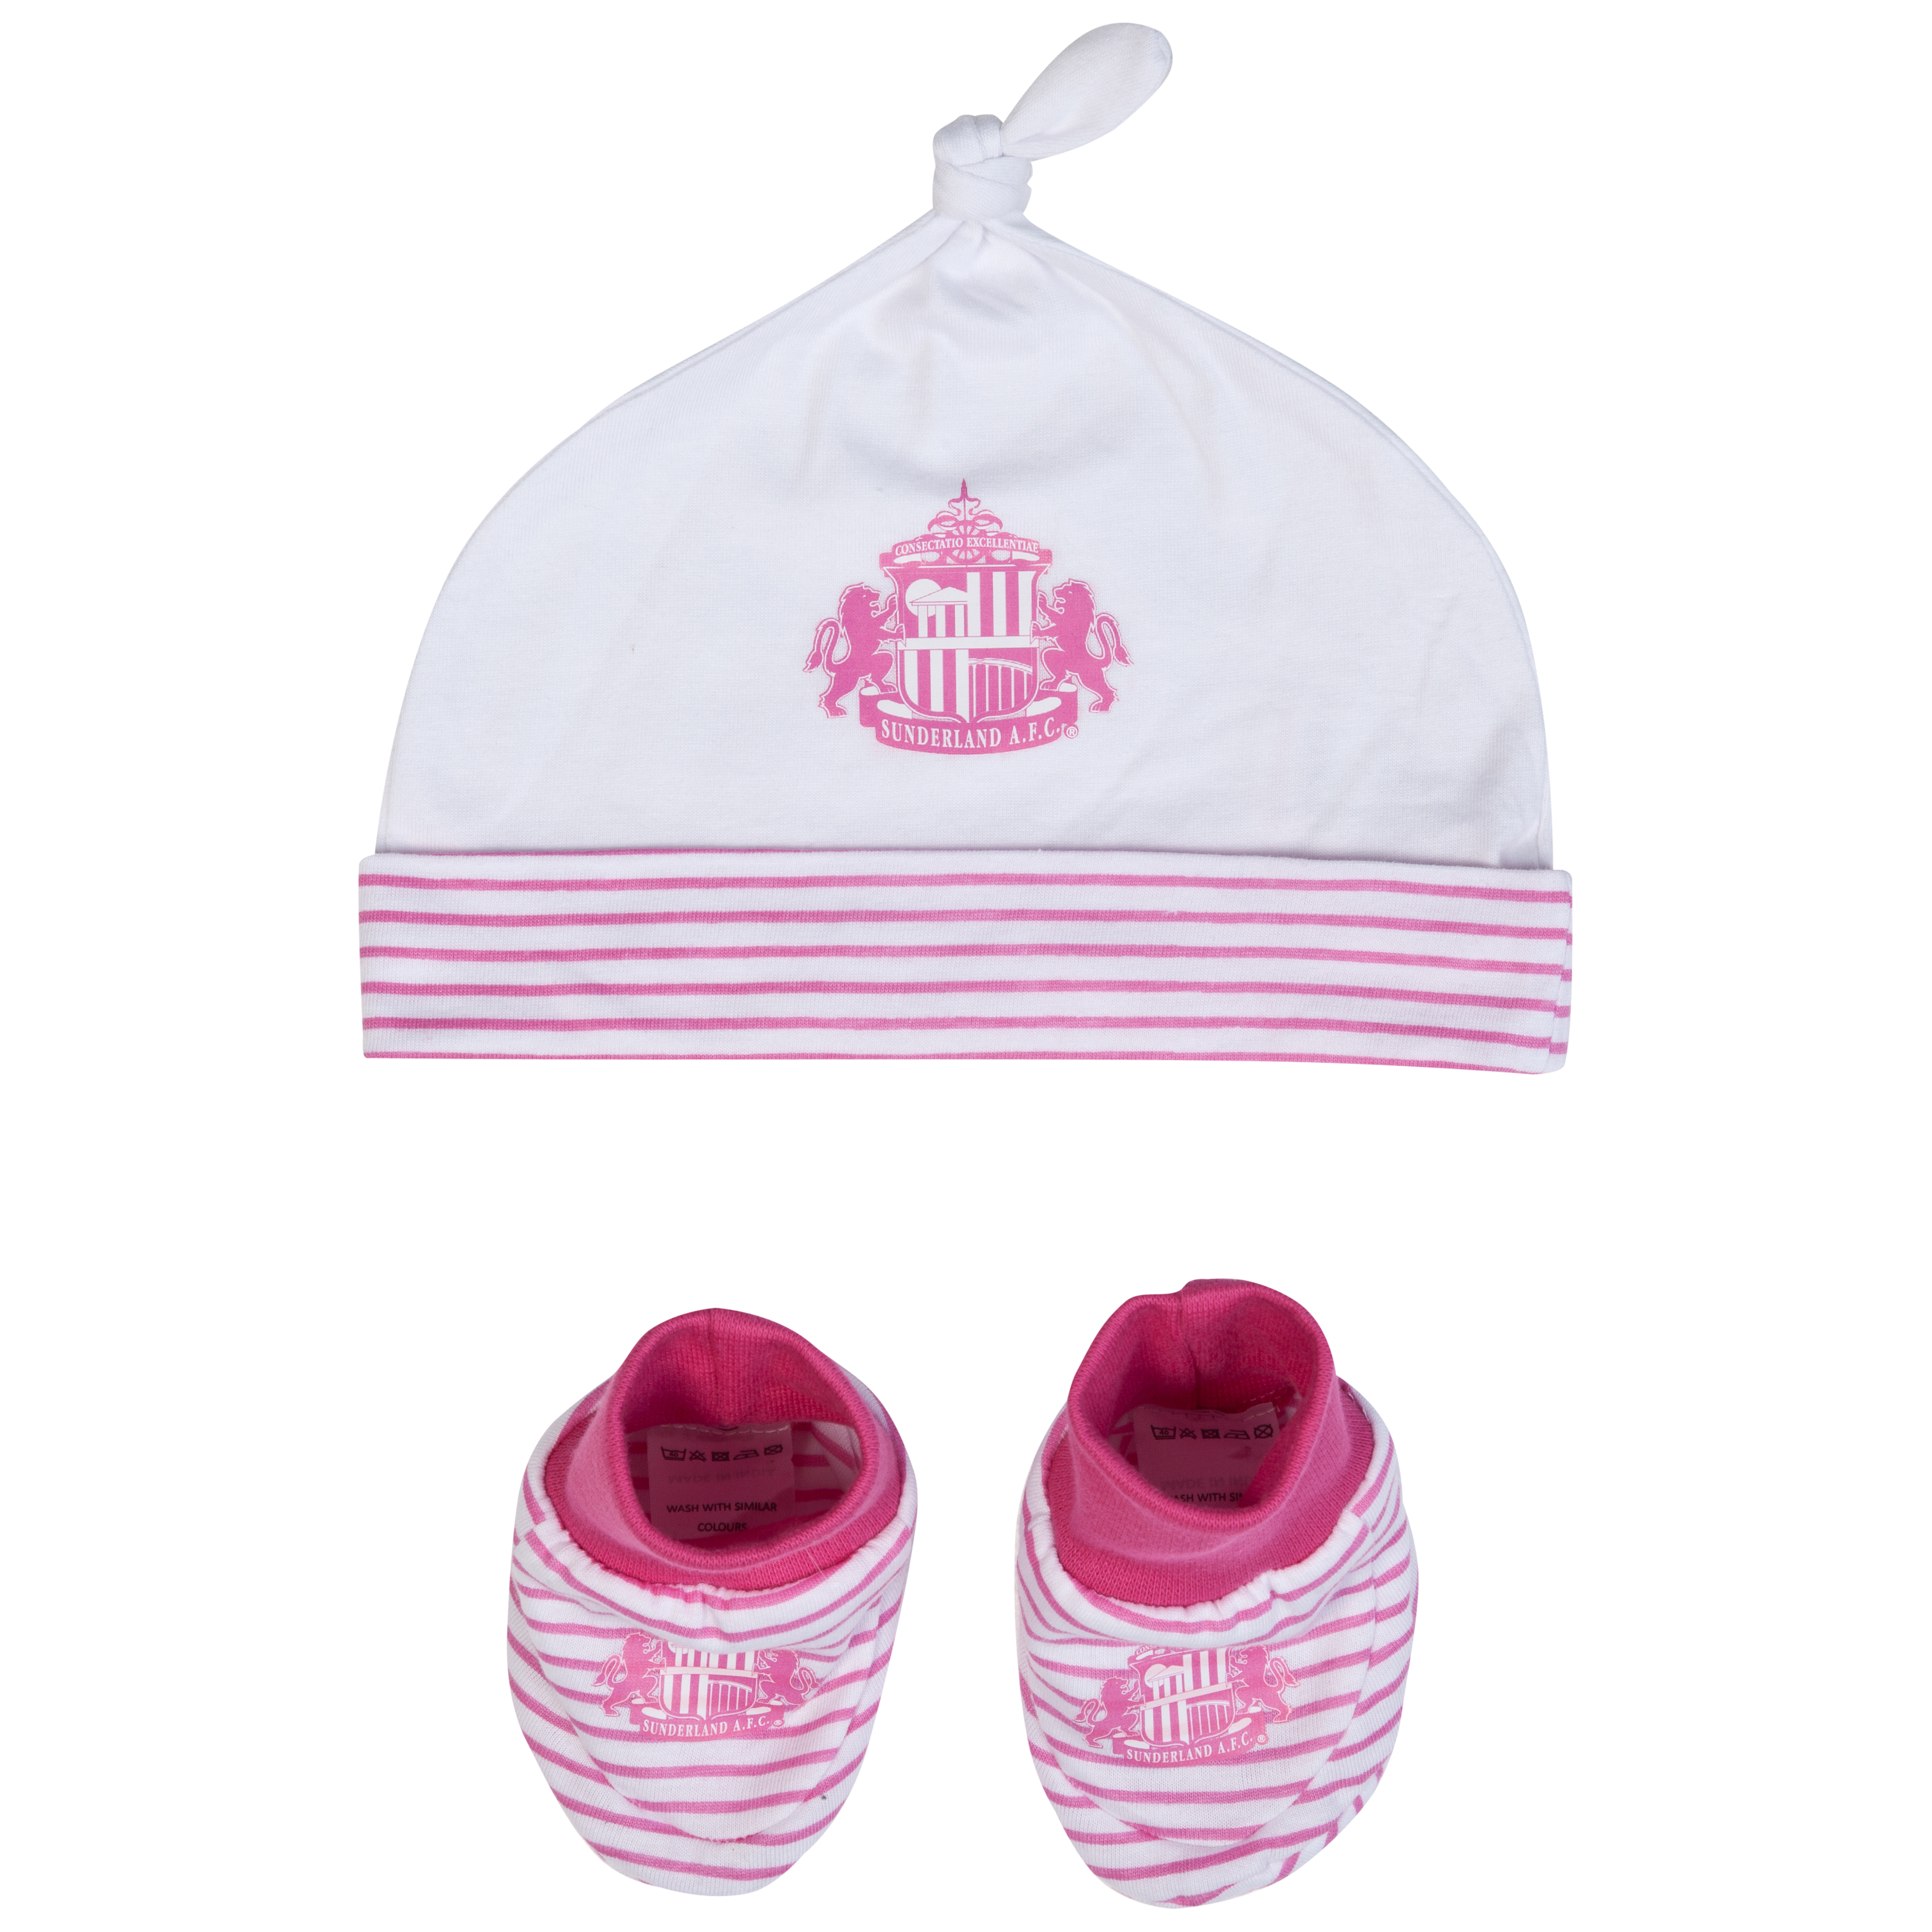 Sunderland Hat and Bootie - Pink/White - Baby